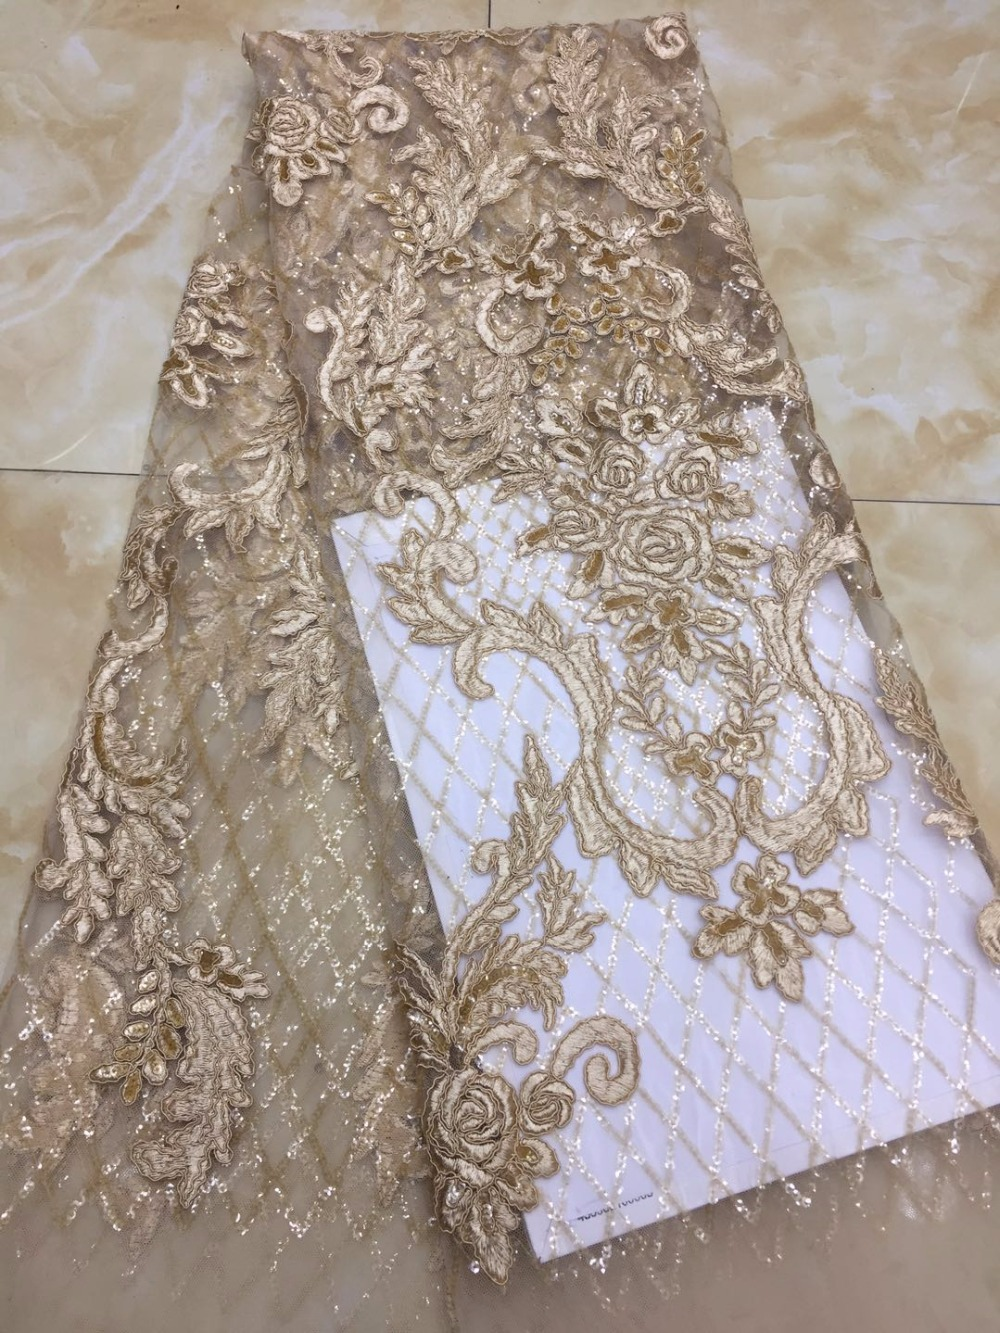 2018 French Lace Fabric African Women Tulle French Sequins Lace For Party Nigerian Lace Fabric Sequins Net Tulle Lace Material2018 French Lace Fabric African Women Tulle French Sequins Lace For Party Nigerian Lace Fabric Sequins Net Tulle Lace Material